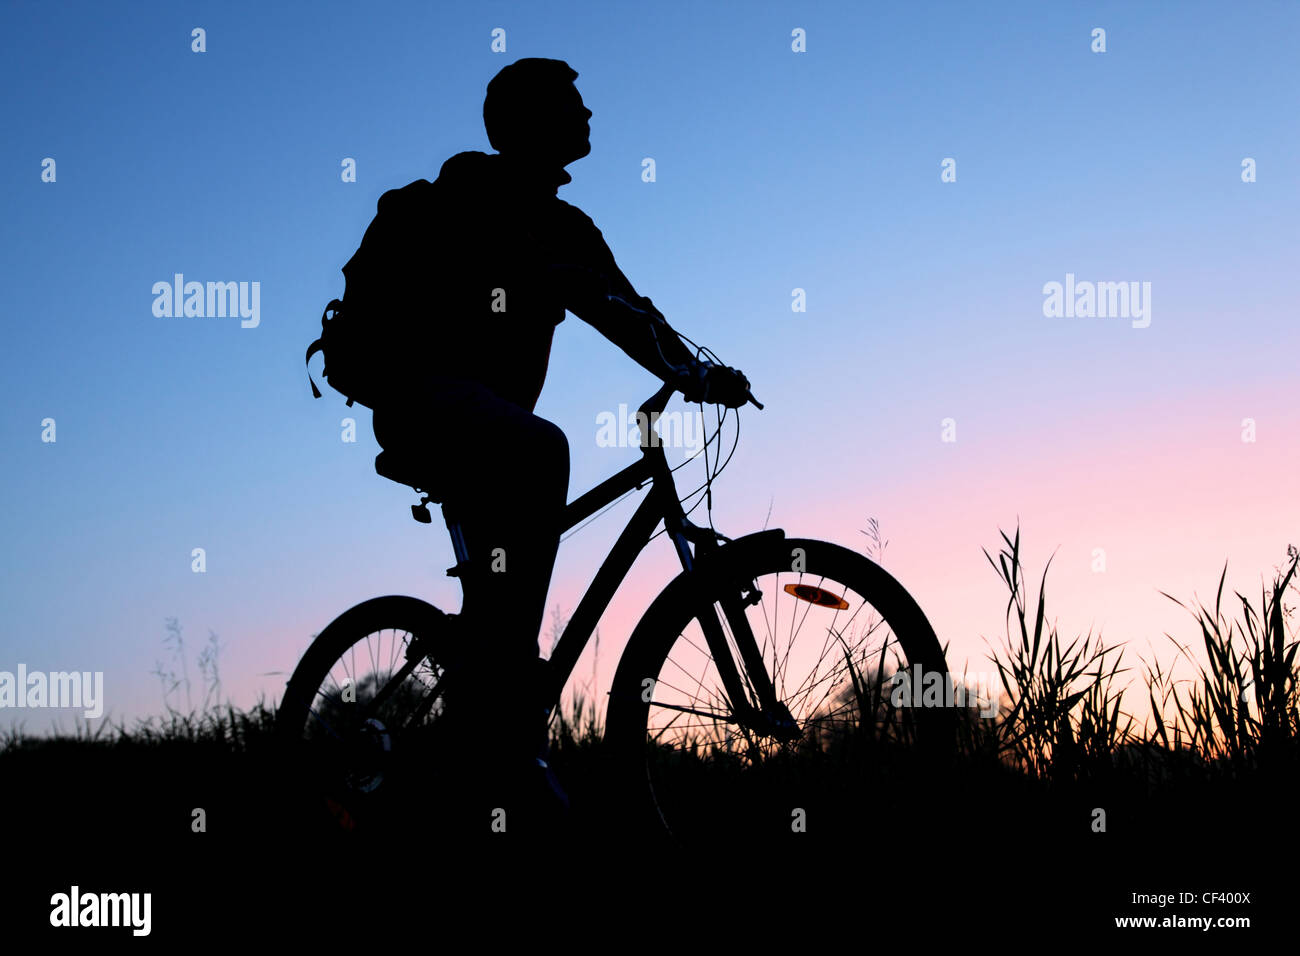 Silhouette of the bicyclist against the sunset sky - Stock Image